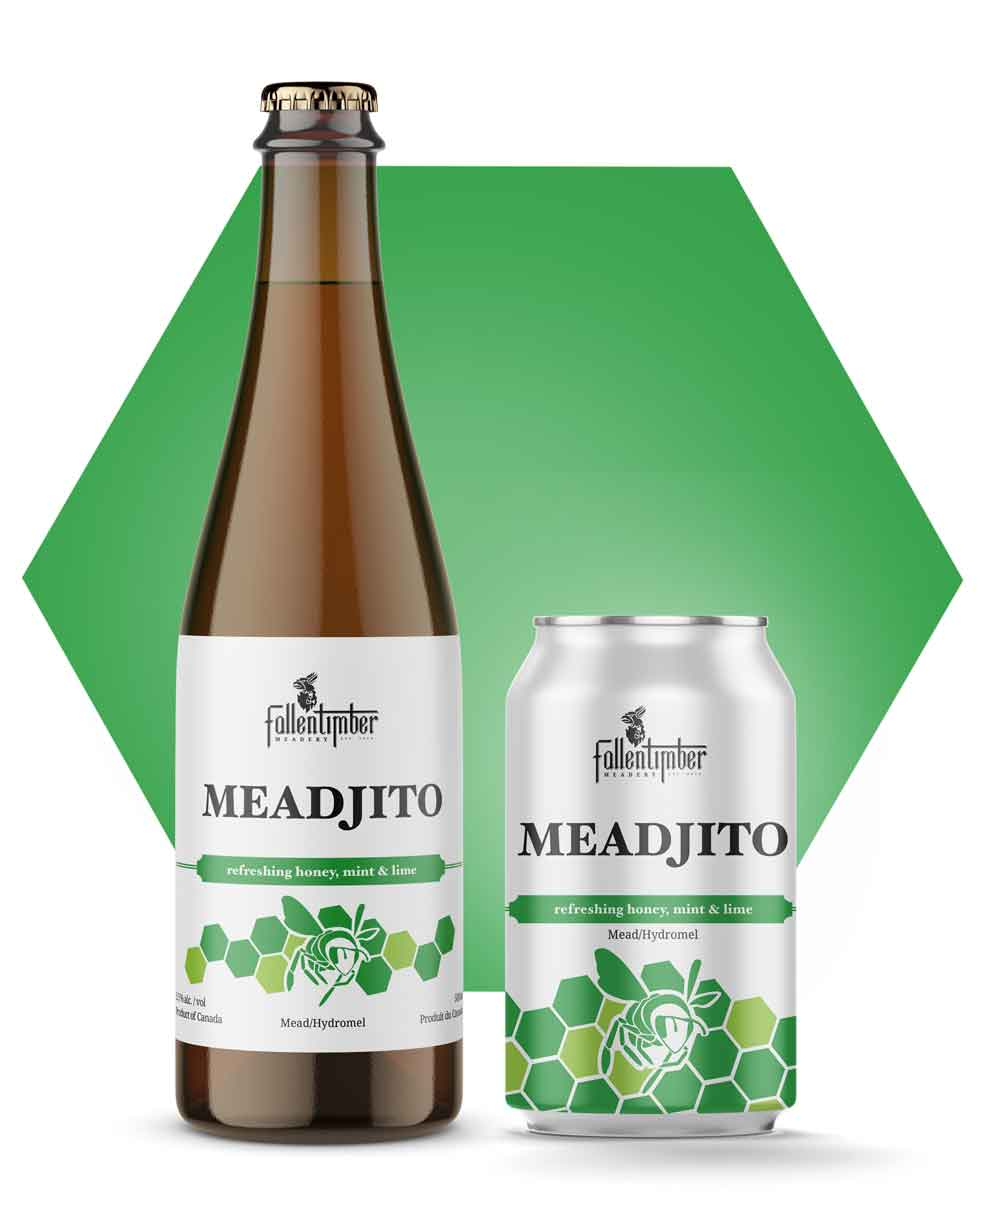 Canadian crafted meads